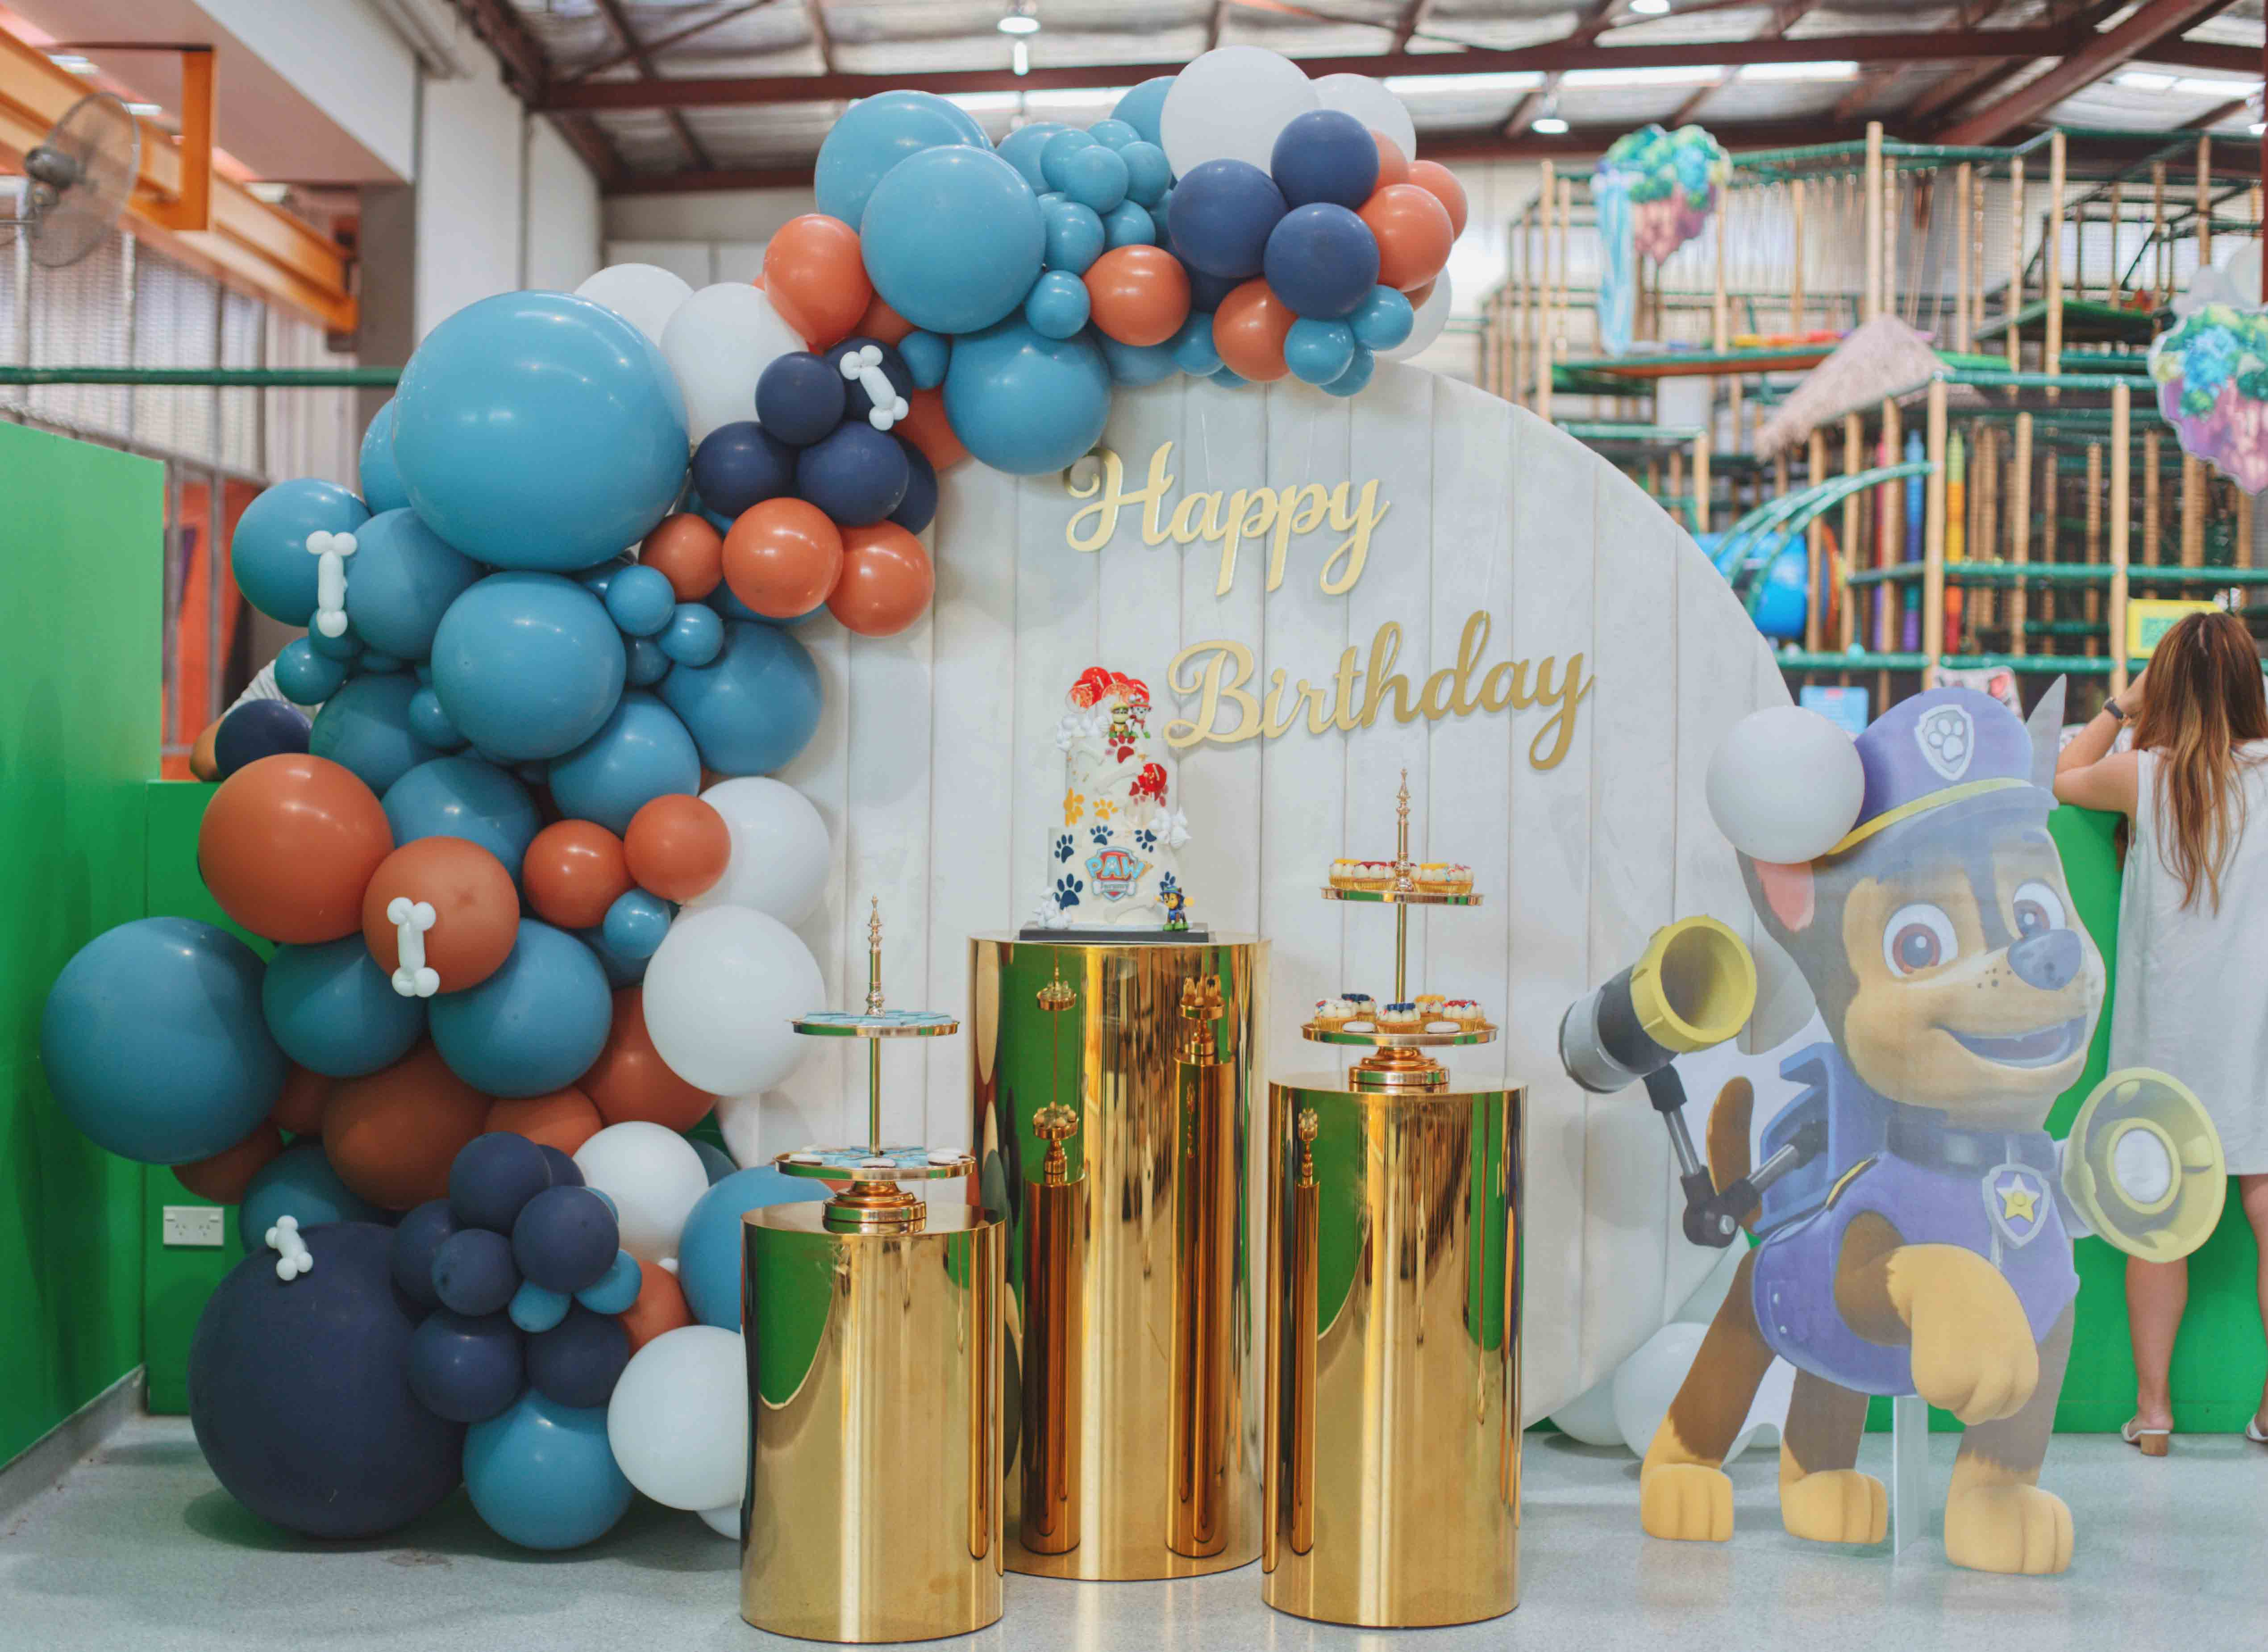 Styling and Hire by Luxe Dream / Balloons by GEM Balloon